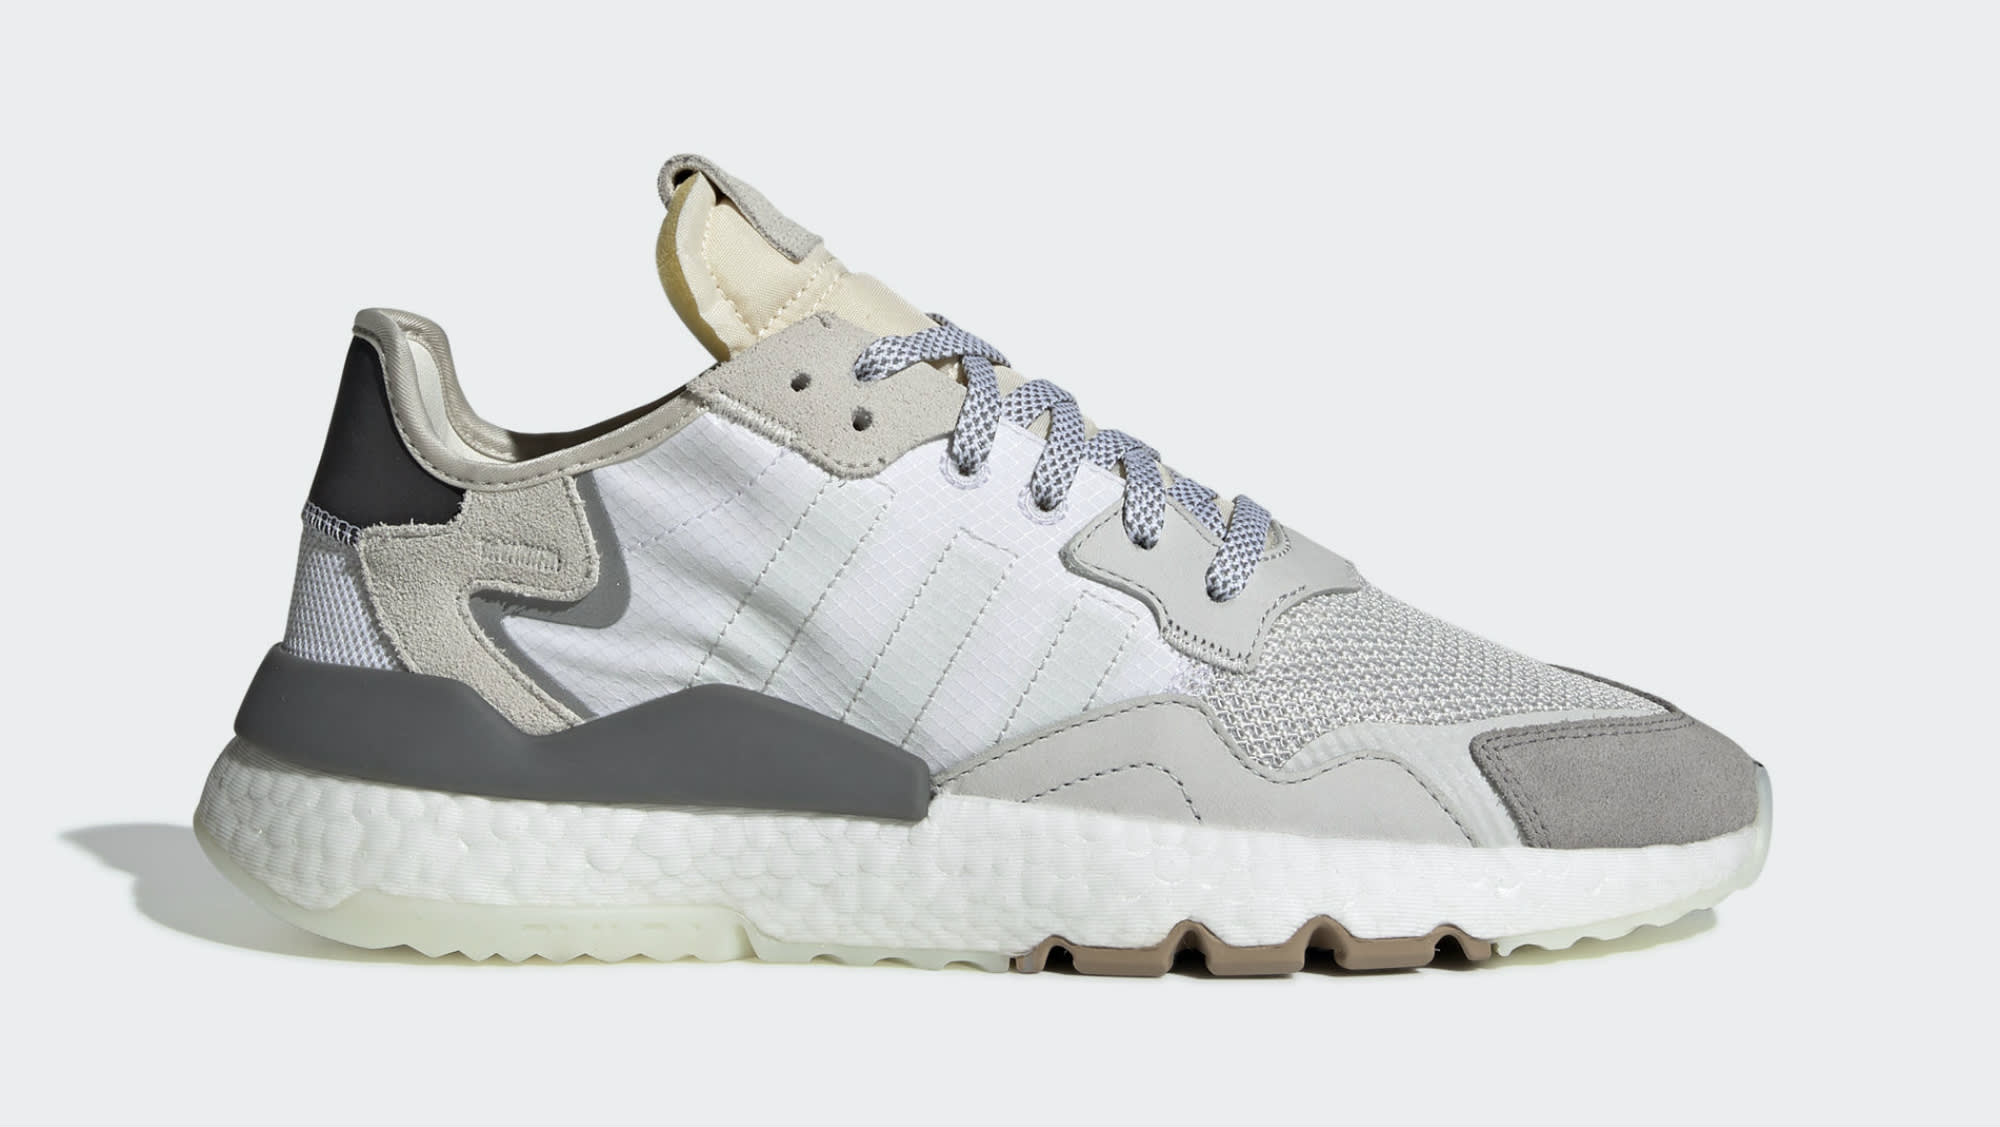 adidas-nite-jogger-cloud-white-crystal-white-core-black-cg5950-release-date